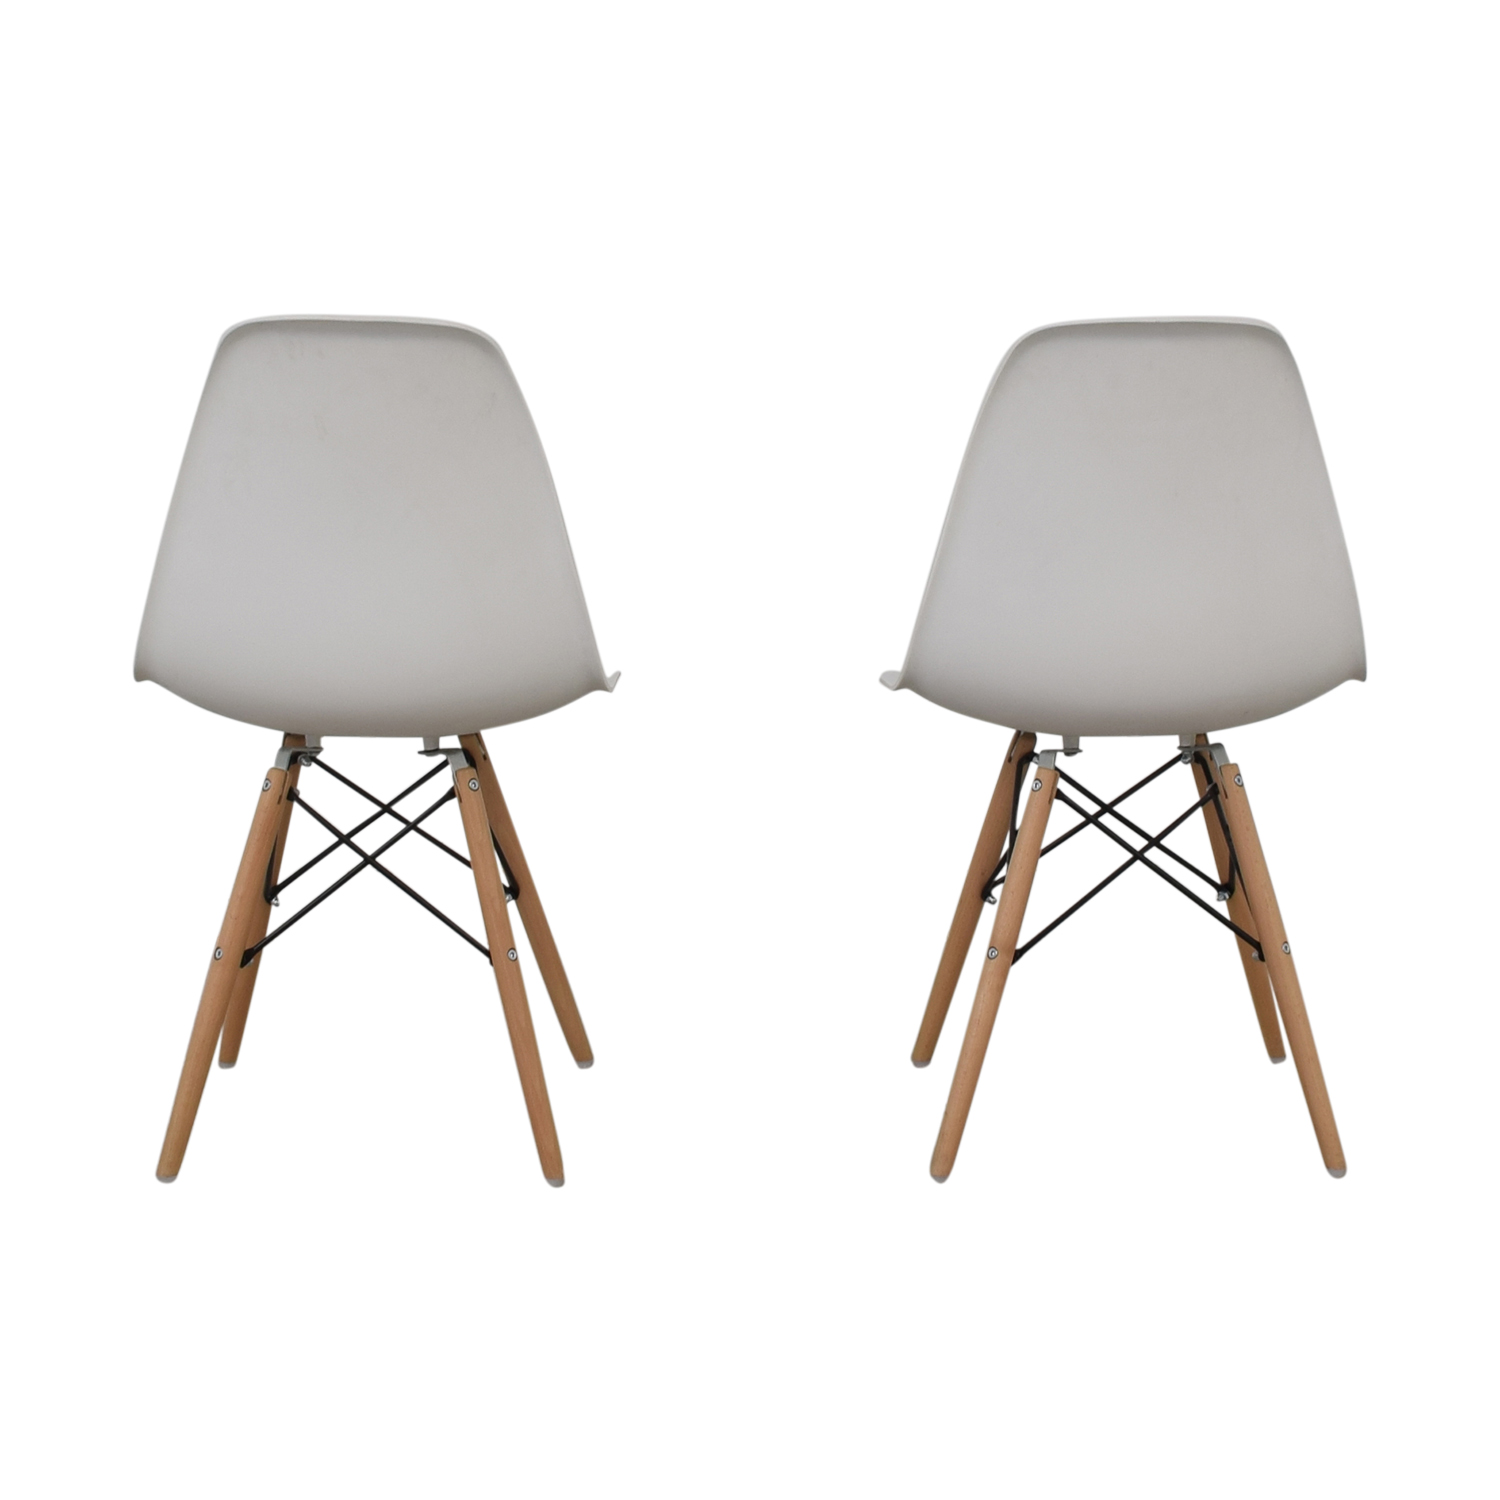 Eames Replica 71 Off Wayfair Wayfair Eames Replica White Dining Chairs Chairs